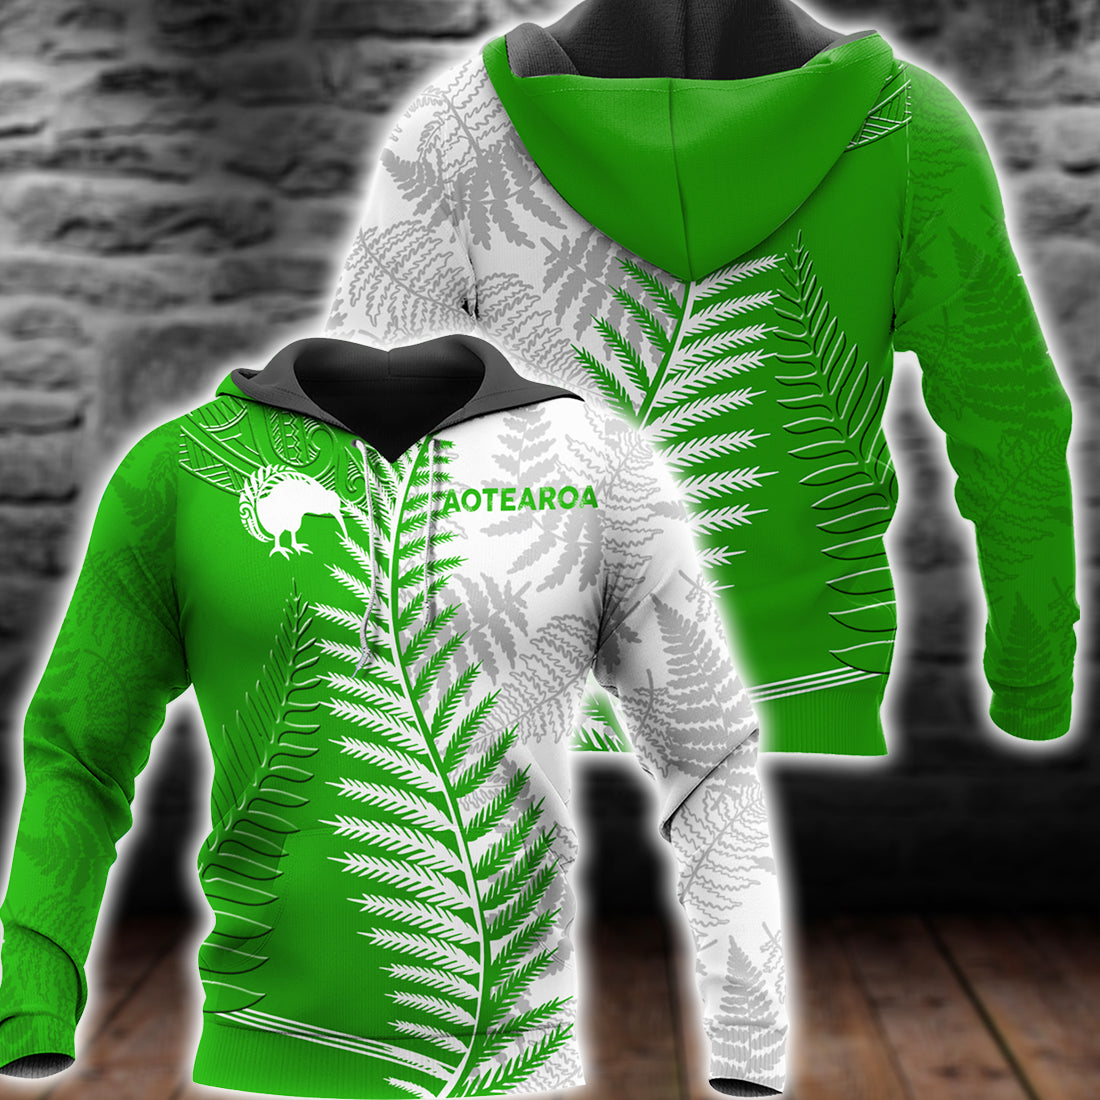 New zealand with silver fern kiwi all over print - luxamz